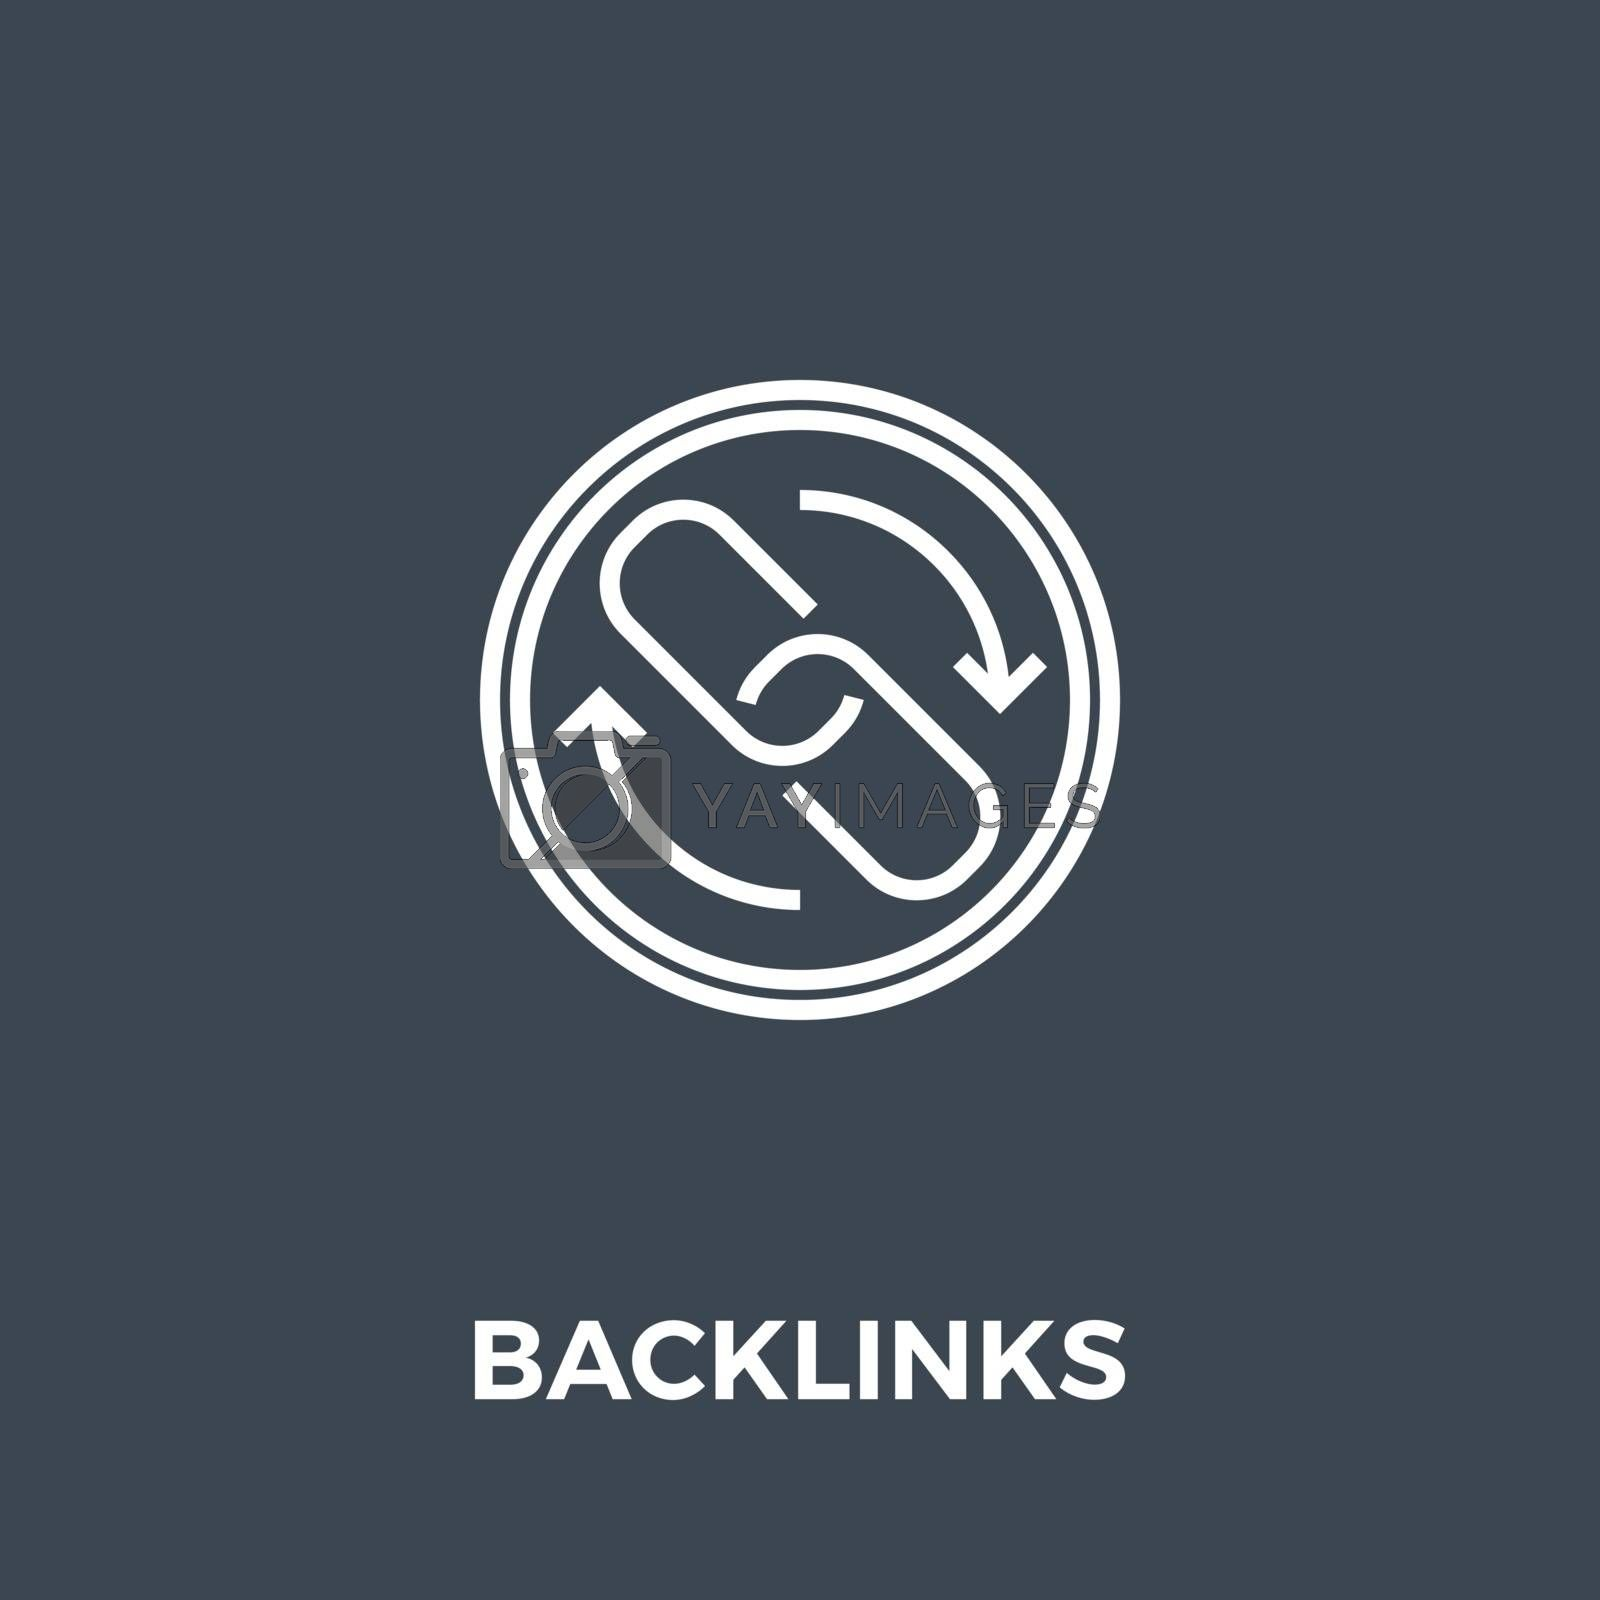 Backlinks Related Vector Thin Line Icon. Isolated on Black Background. Editable Stroke. Vector Illustration.